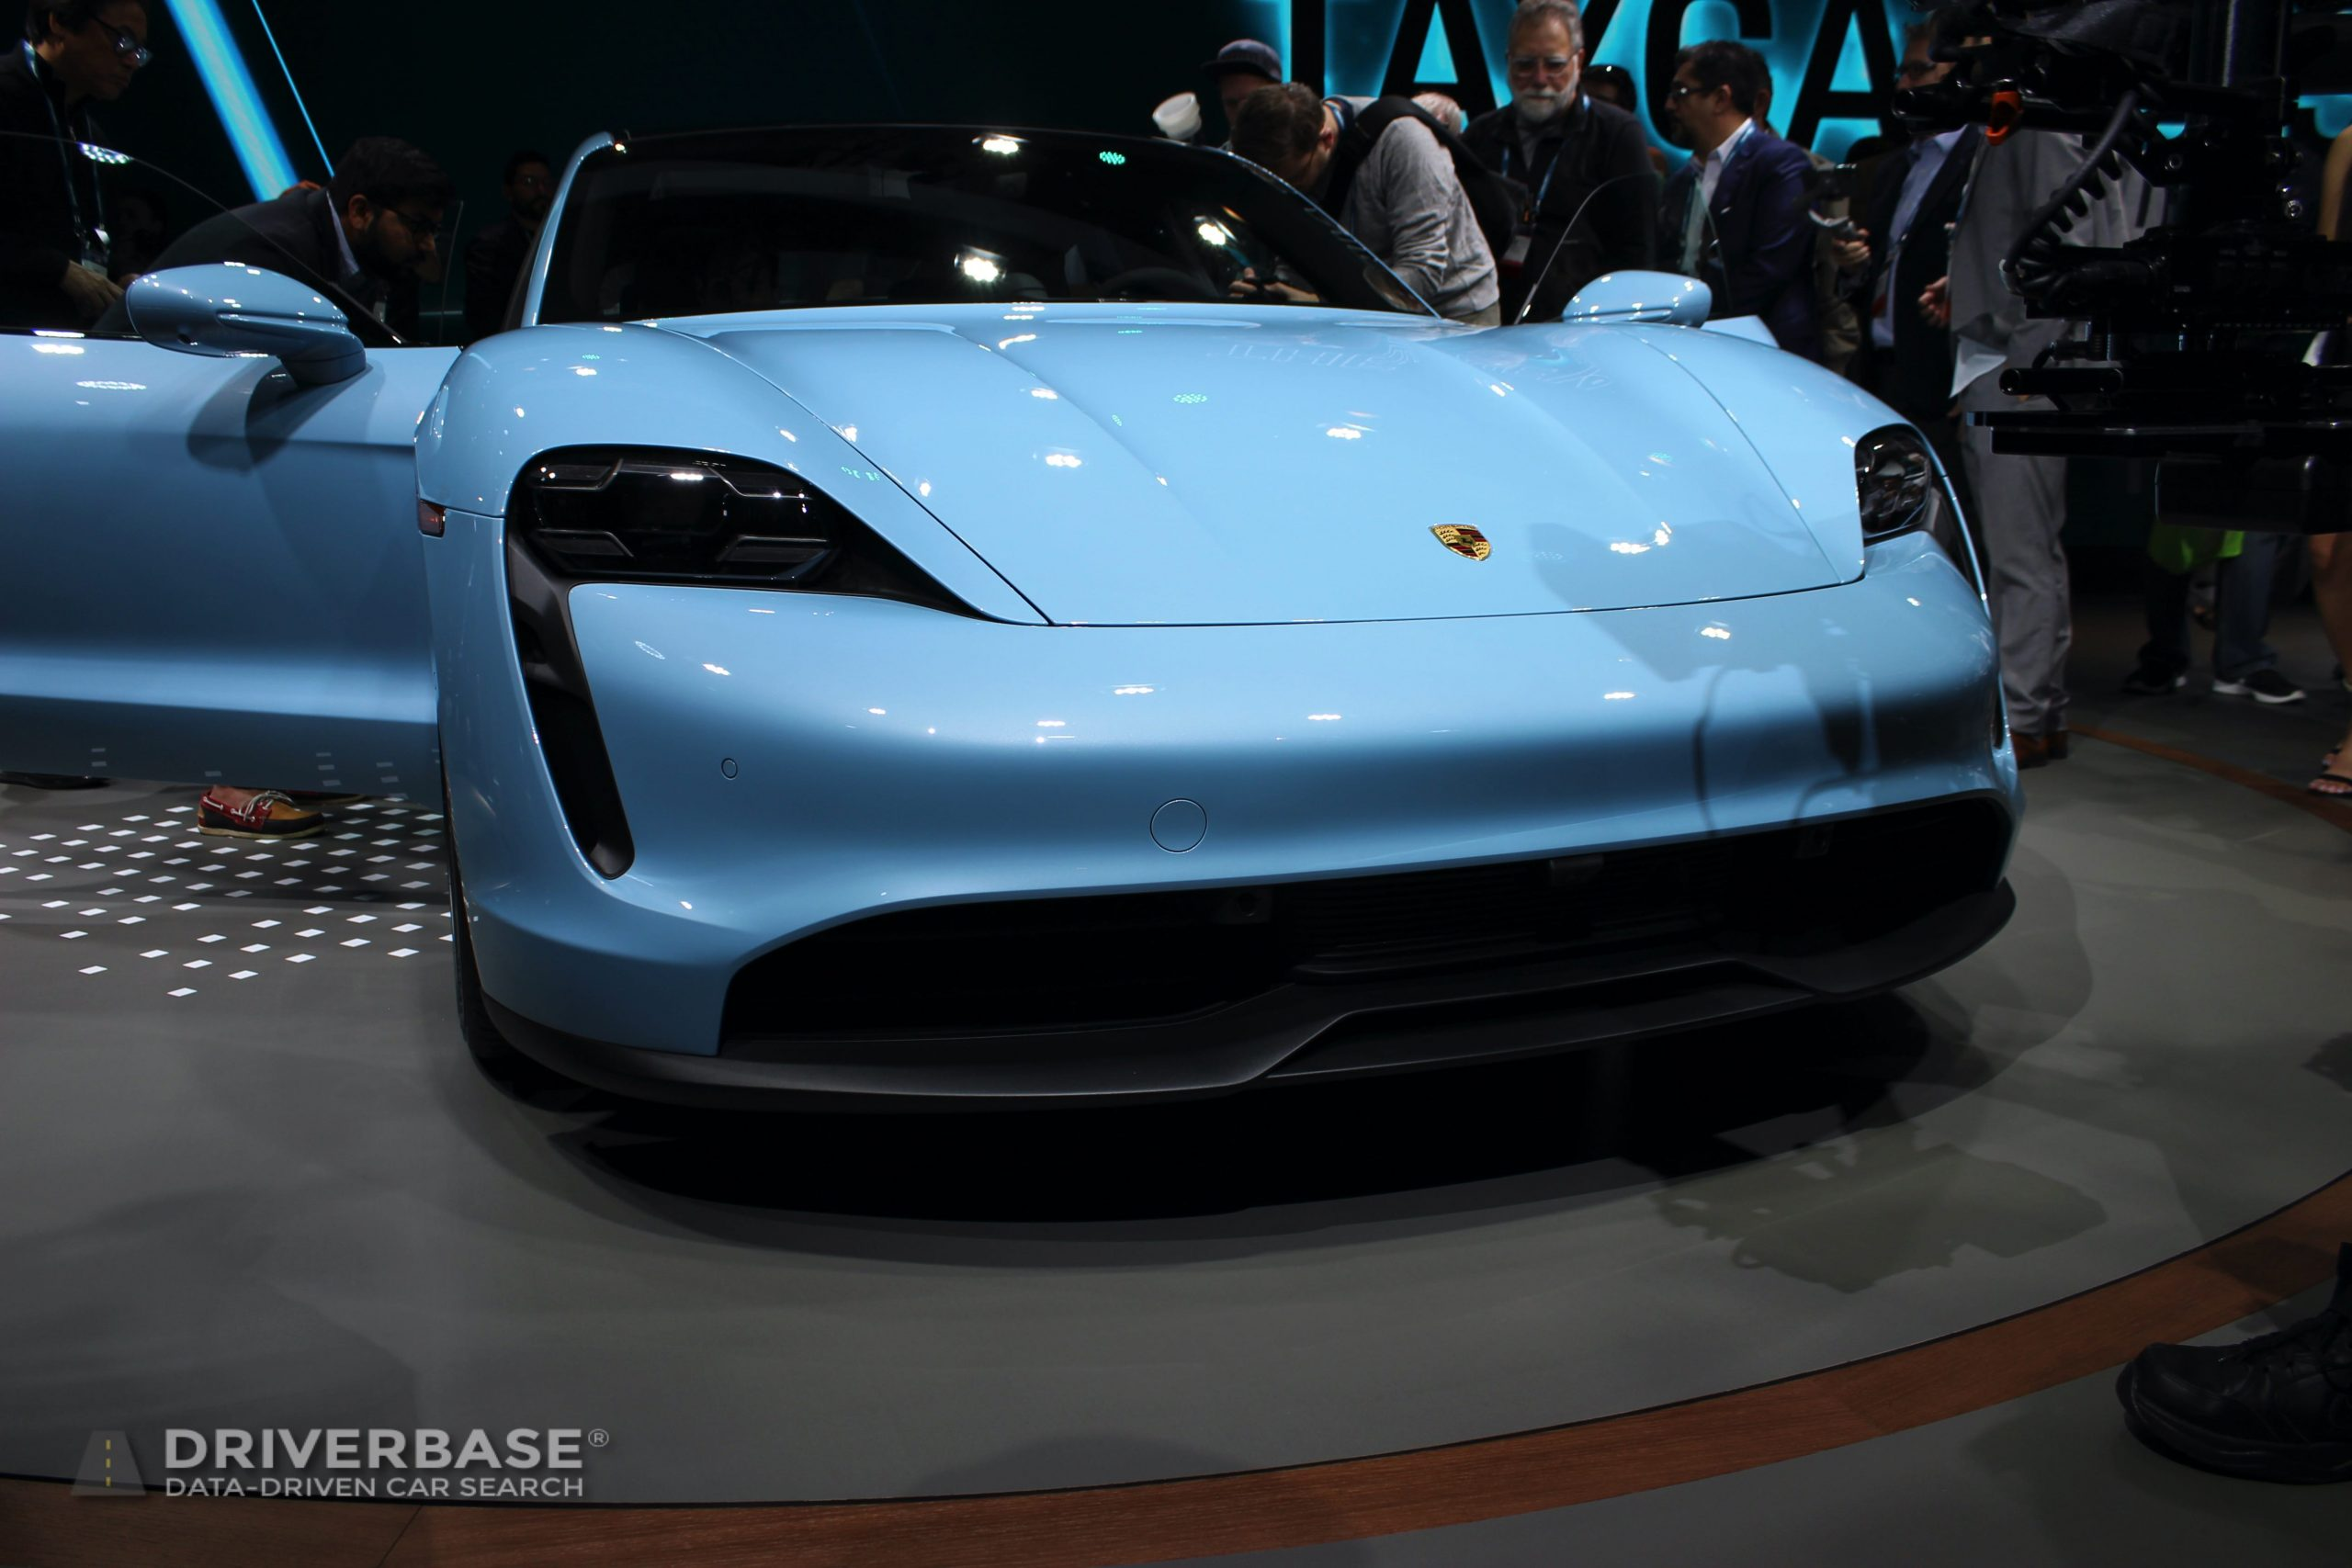 2020 Porsche Taycan Launch at the 2019 Los Angeles Auto Show